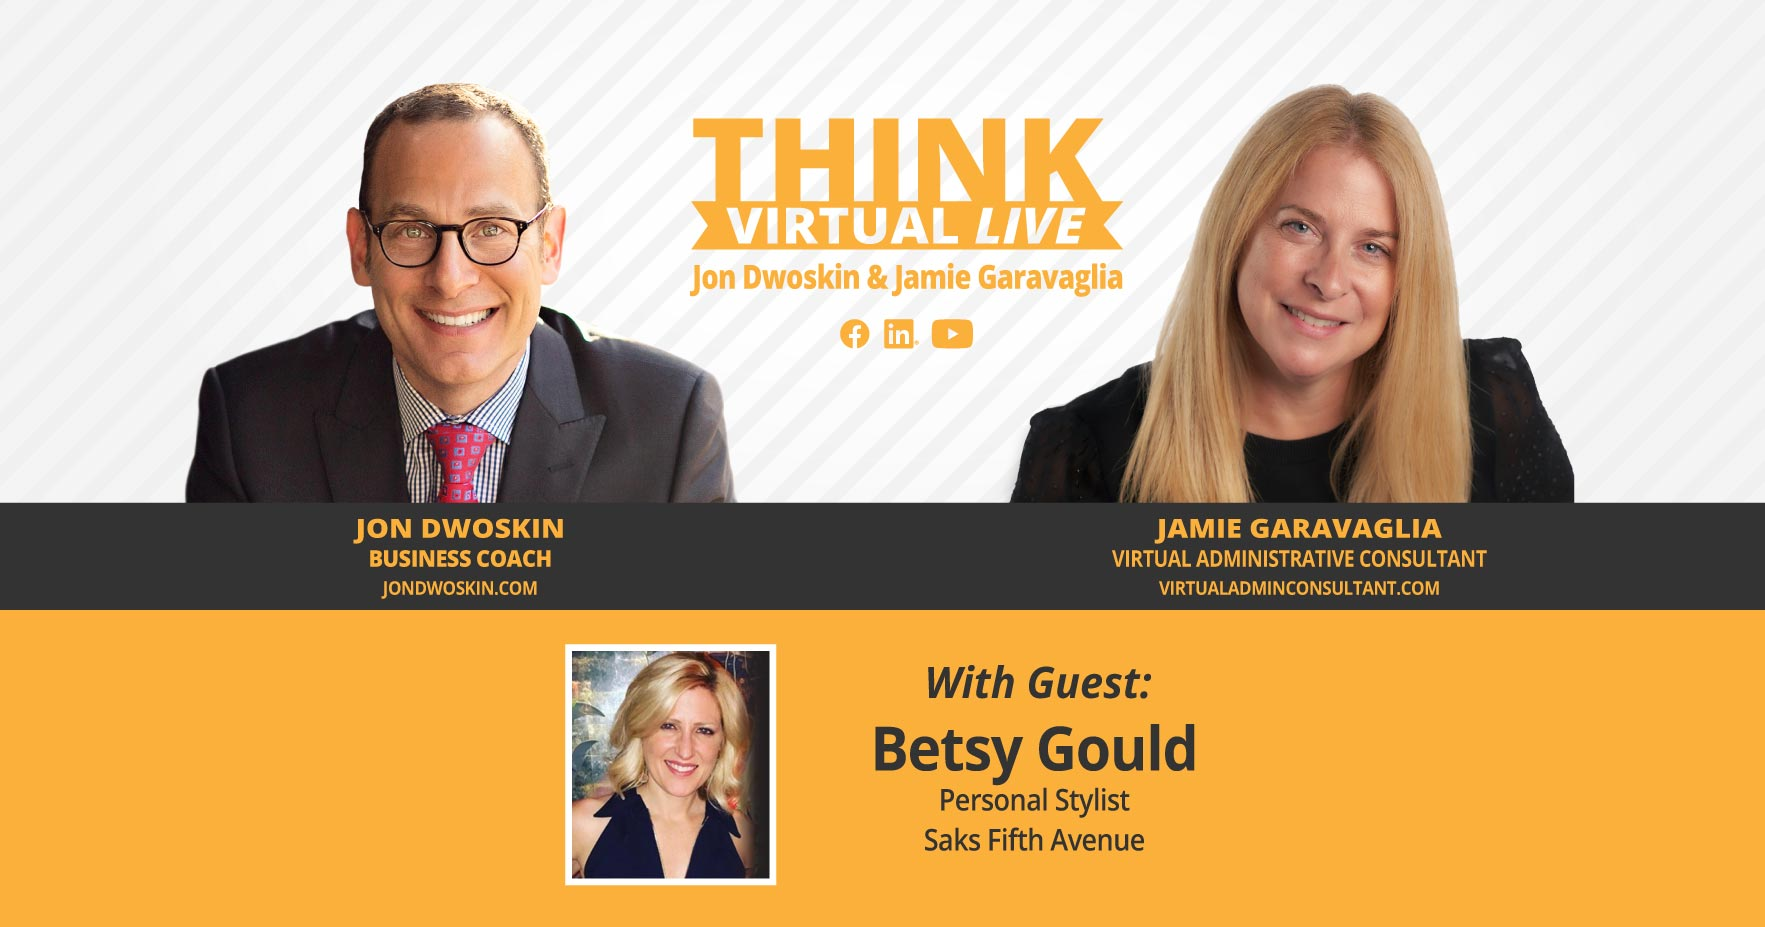 THINK Virtual LIVE: Jon Dwoskin and Jamie Garavaglia Talk with Betsy Gould